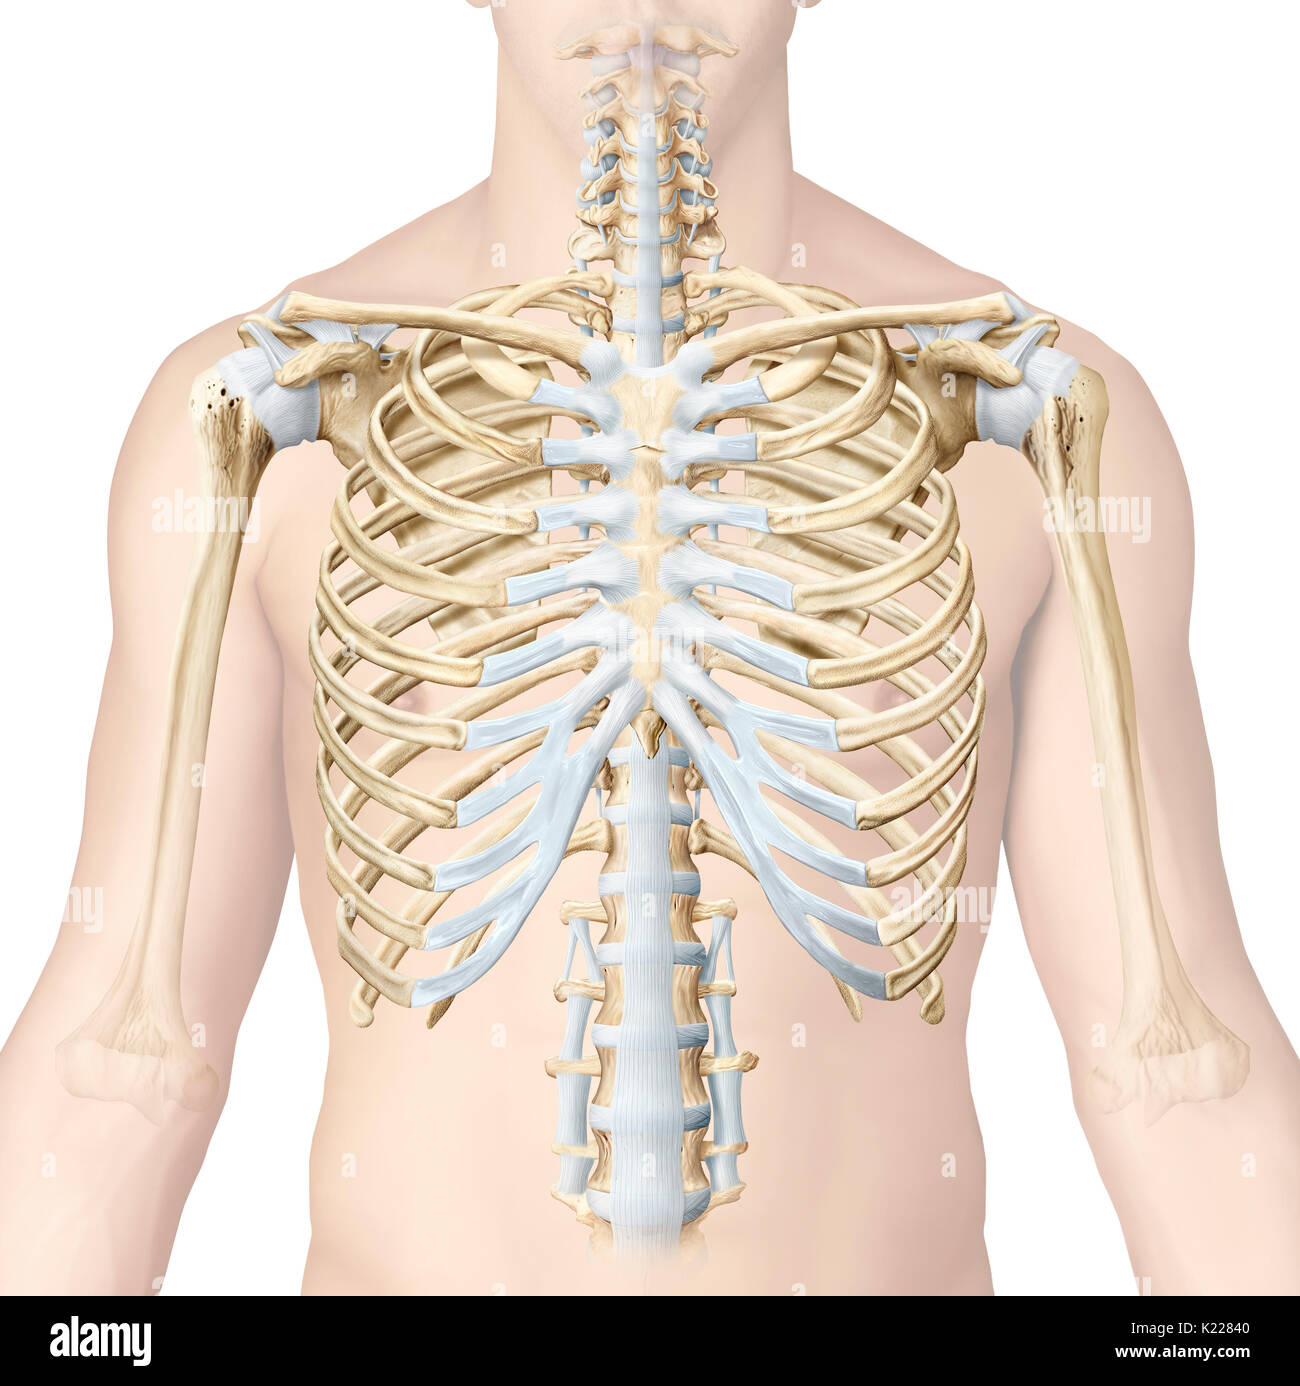 The Sternocostal Joints Are The Cartilaginous Joints That Connect